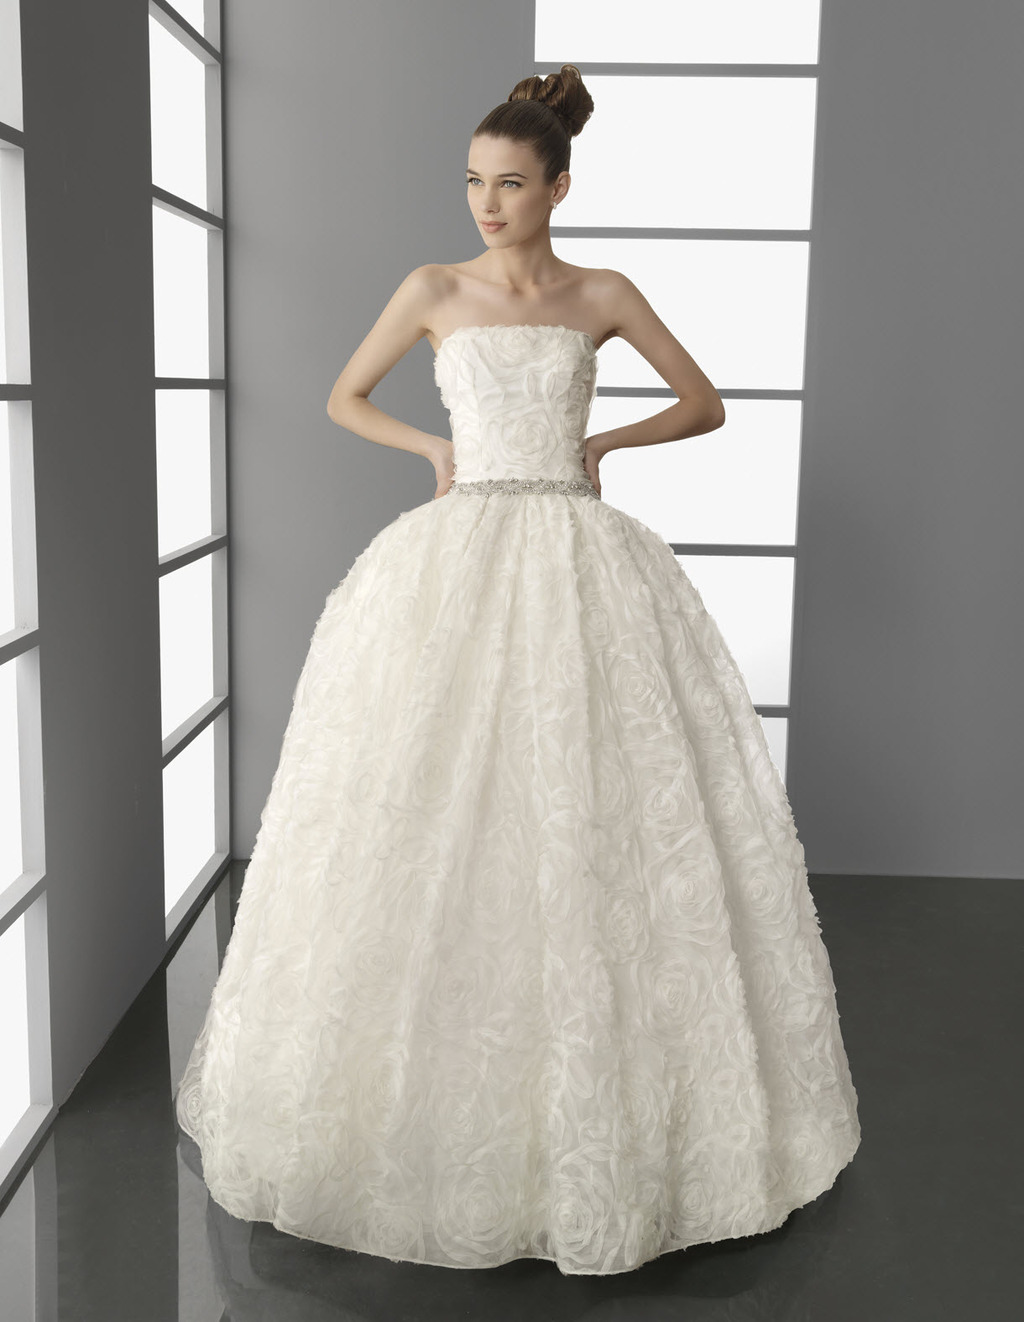 Ivory-princess-wedding-dress-polis-ivory-spring-2012-bridal-gowns-aire-barcelona-textured.full